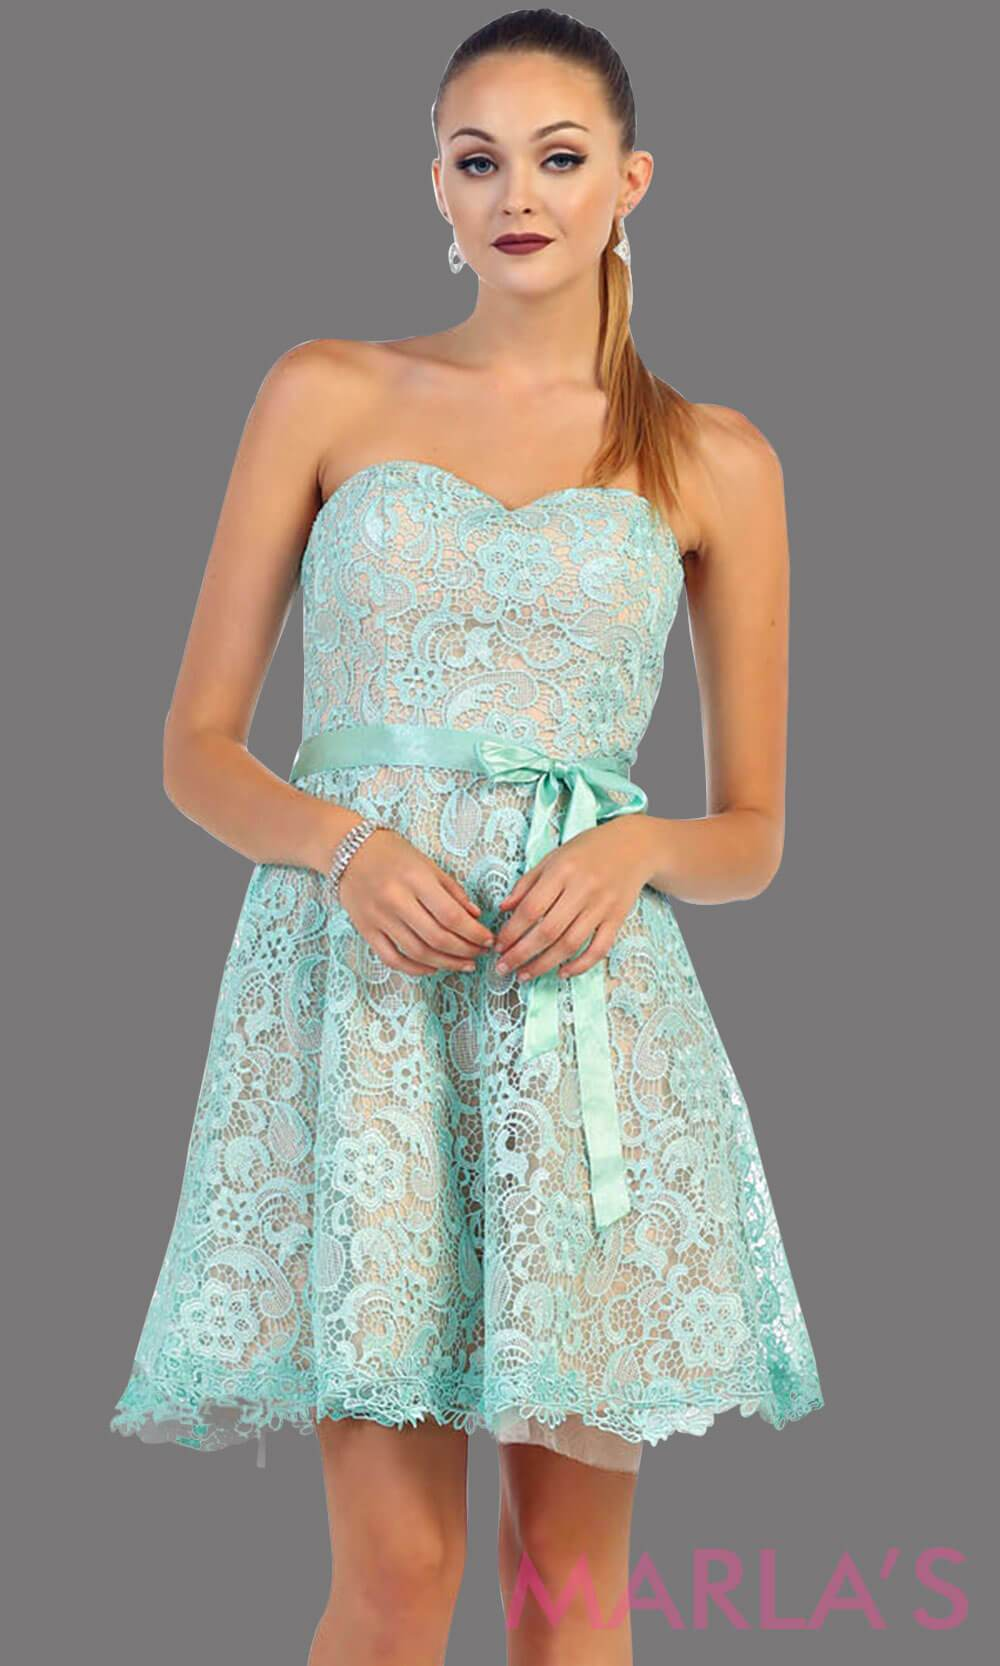 Short Strapless Sweetheart Lace Blue Dress 1406.13S - MarlasFashions ...